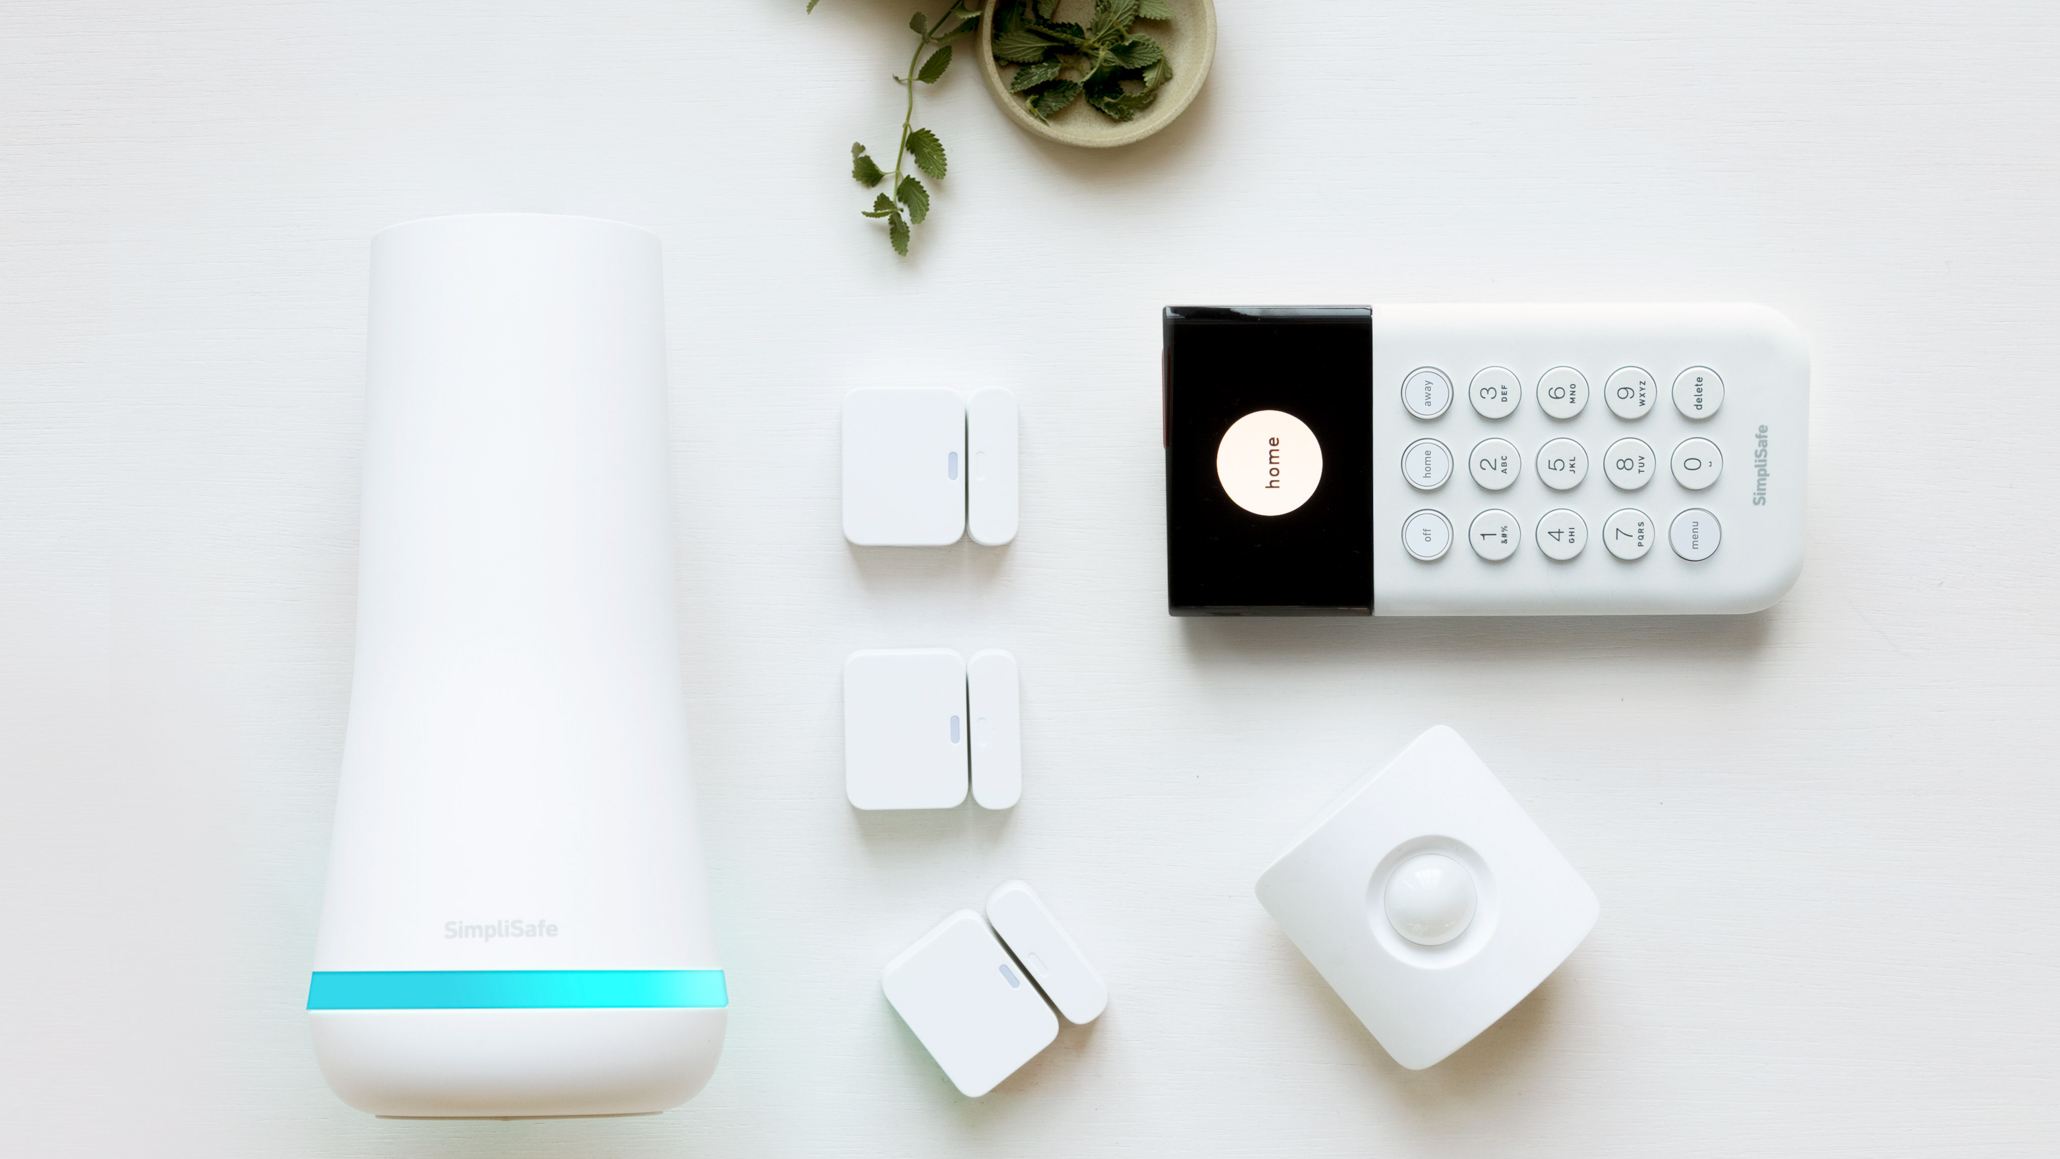 Diy Home Security Devices 6 Smart Ways To Minimize Costs Of Home Security